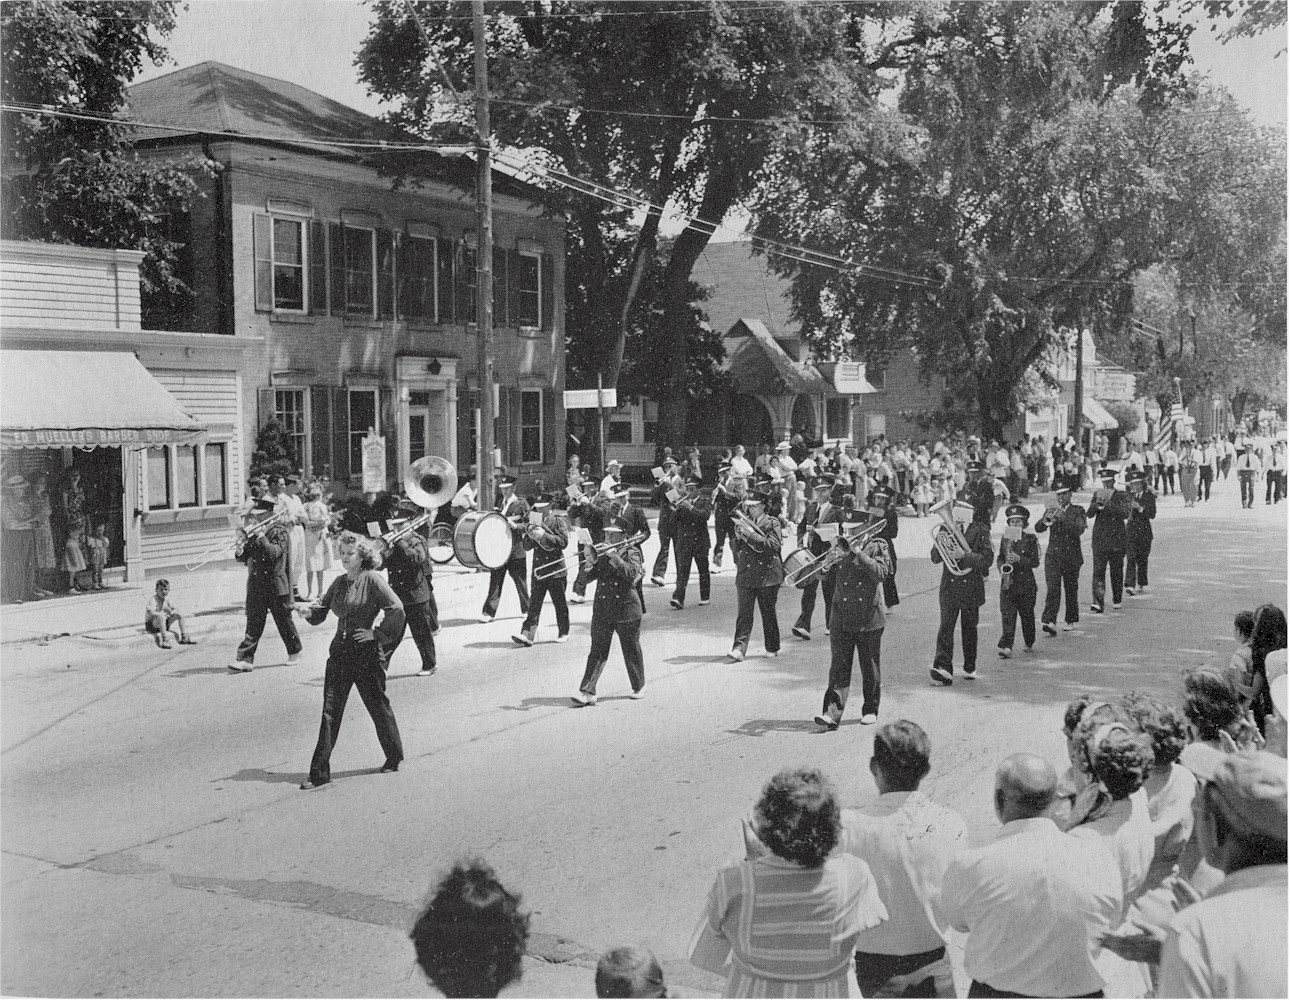 The Civic Band performing in uniforms during a parade.